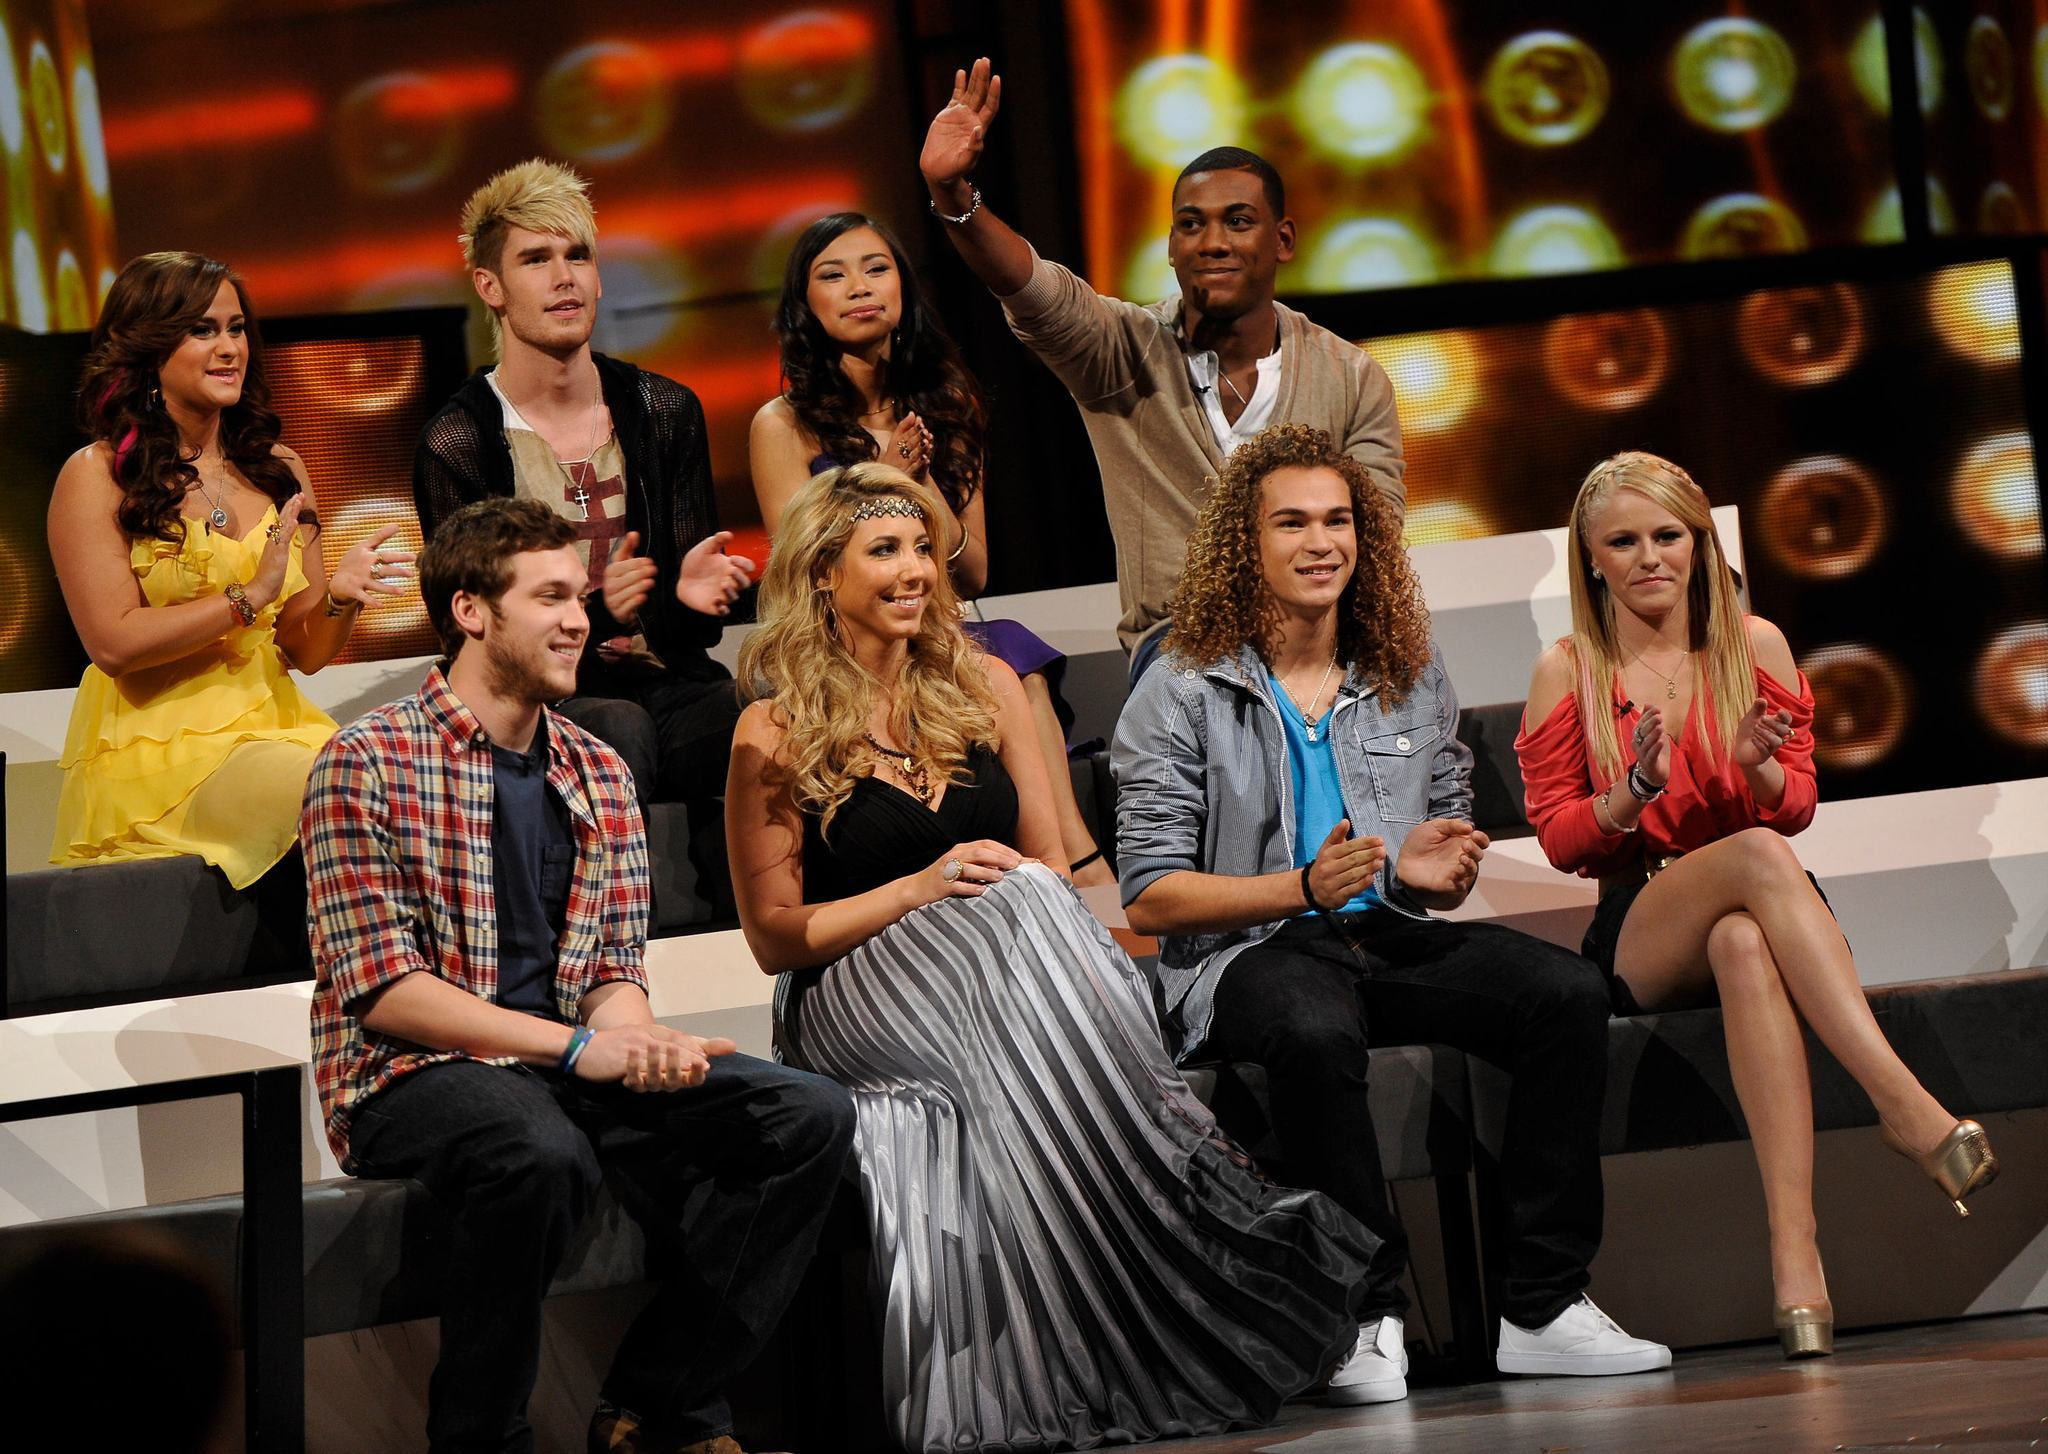 Hollie Cavanagh, Elise Testone, Skylar Laine, DeAndre Brackensick, Joshua Ledet, and Colton Dixon at an event for American Idol: The Search for a Superstar (2002)